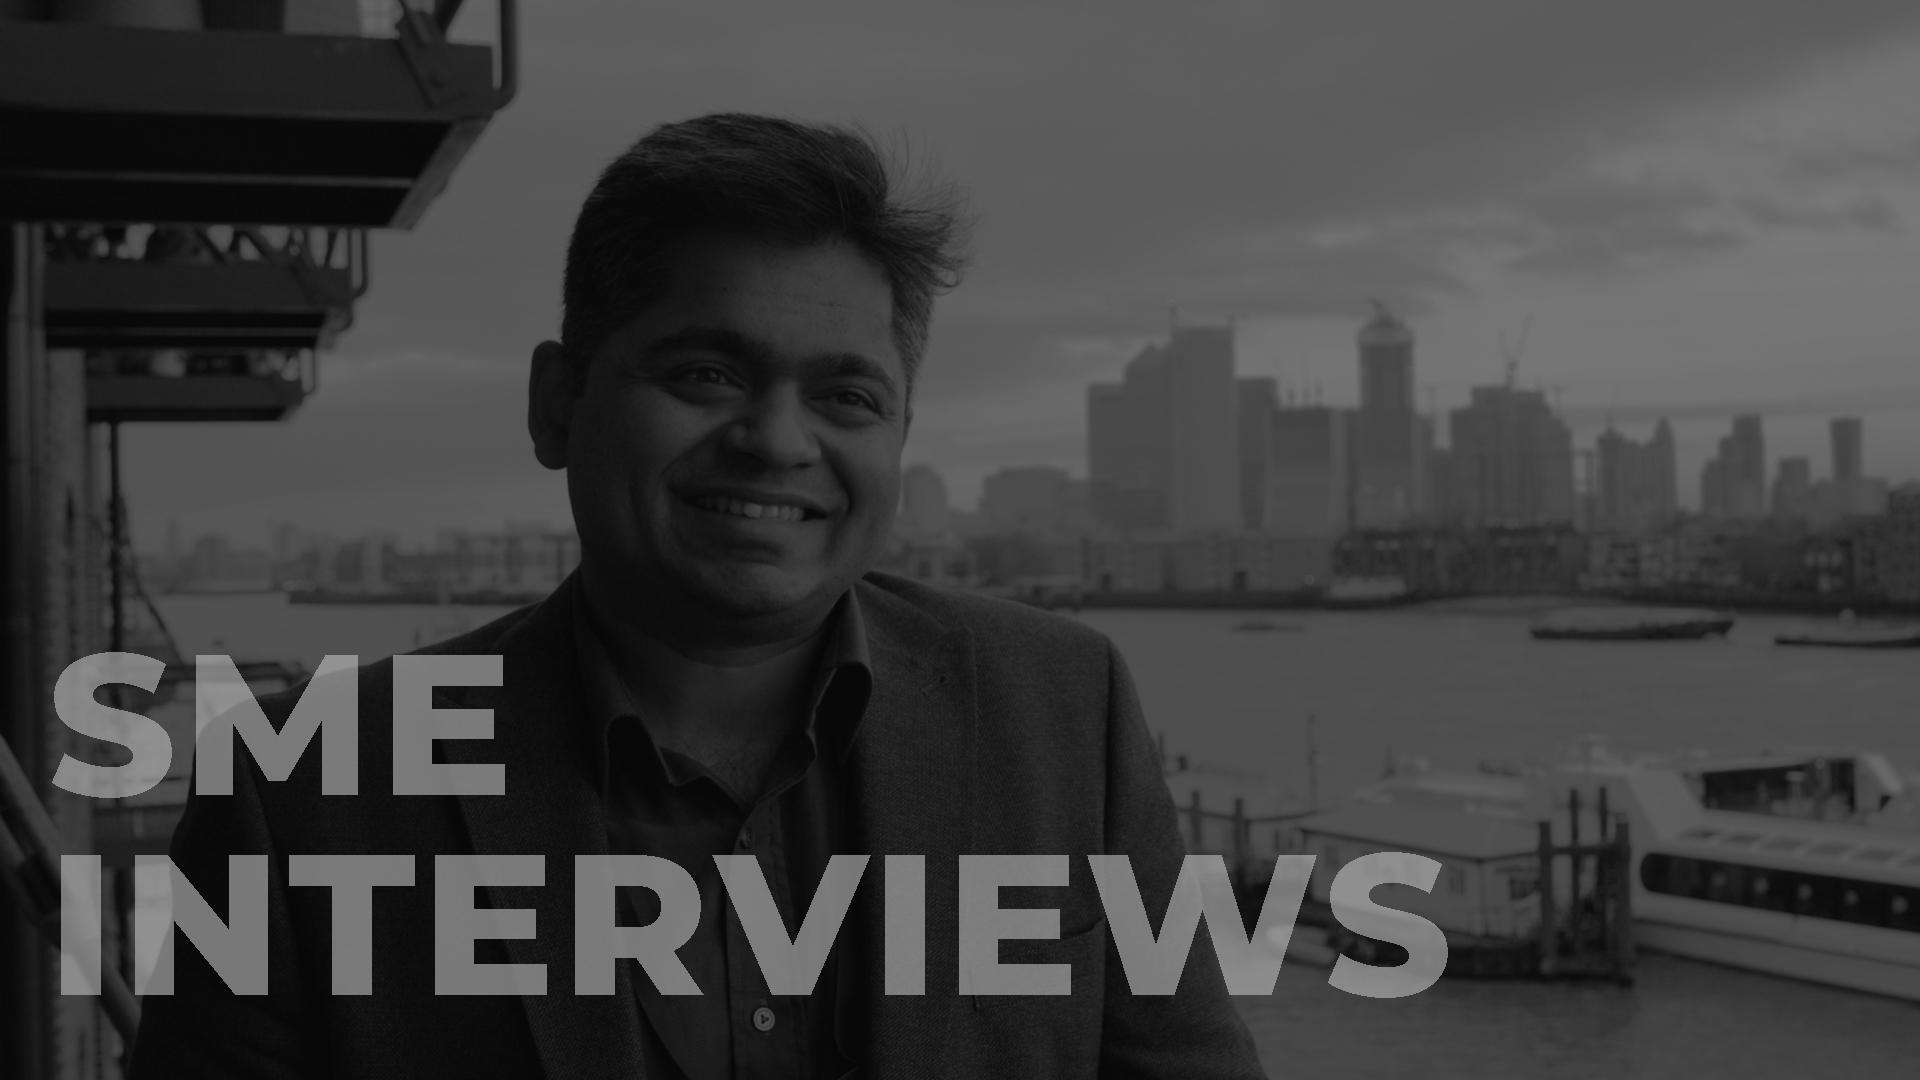 Reveal insights from interviews with subject matter experts